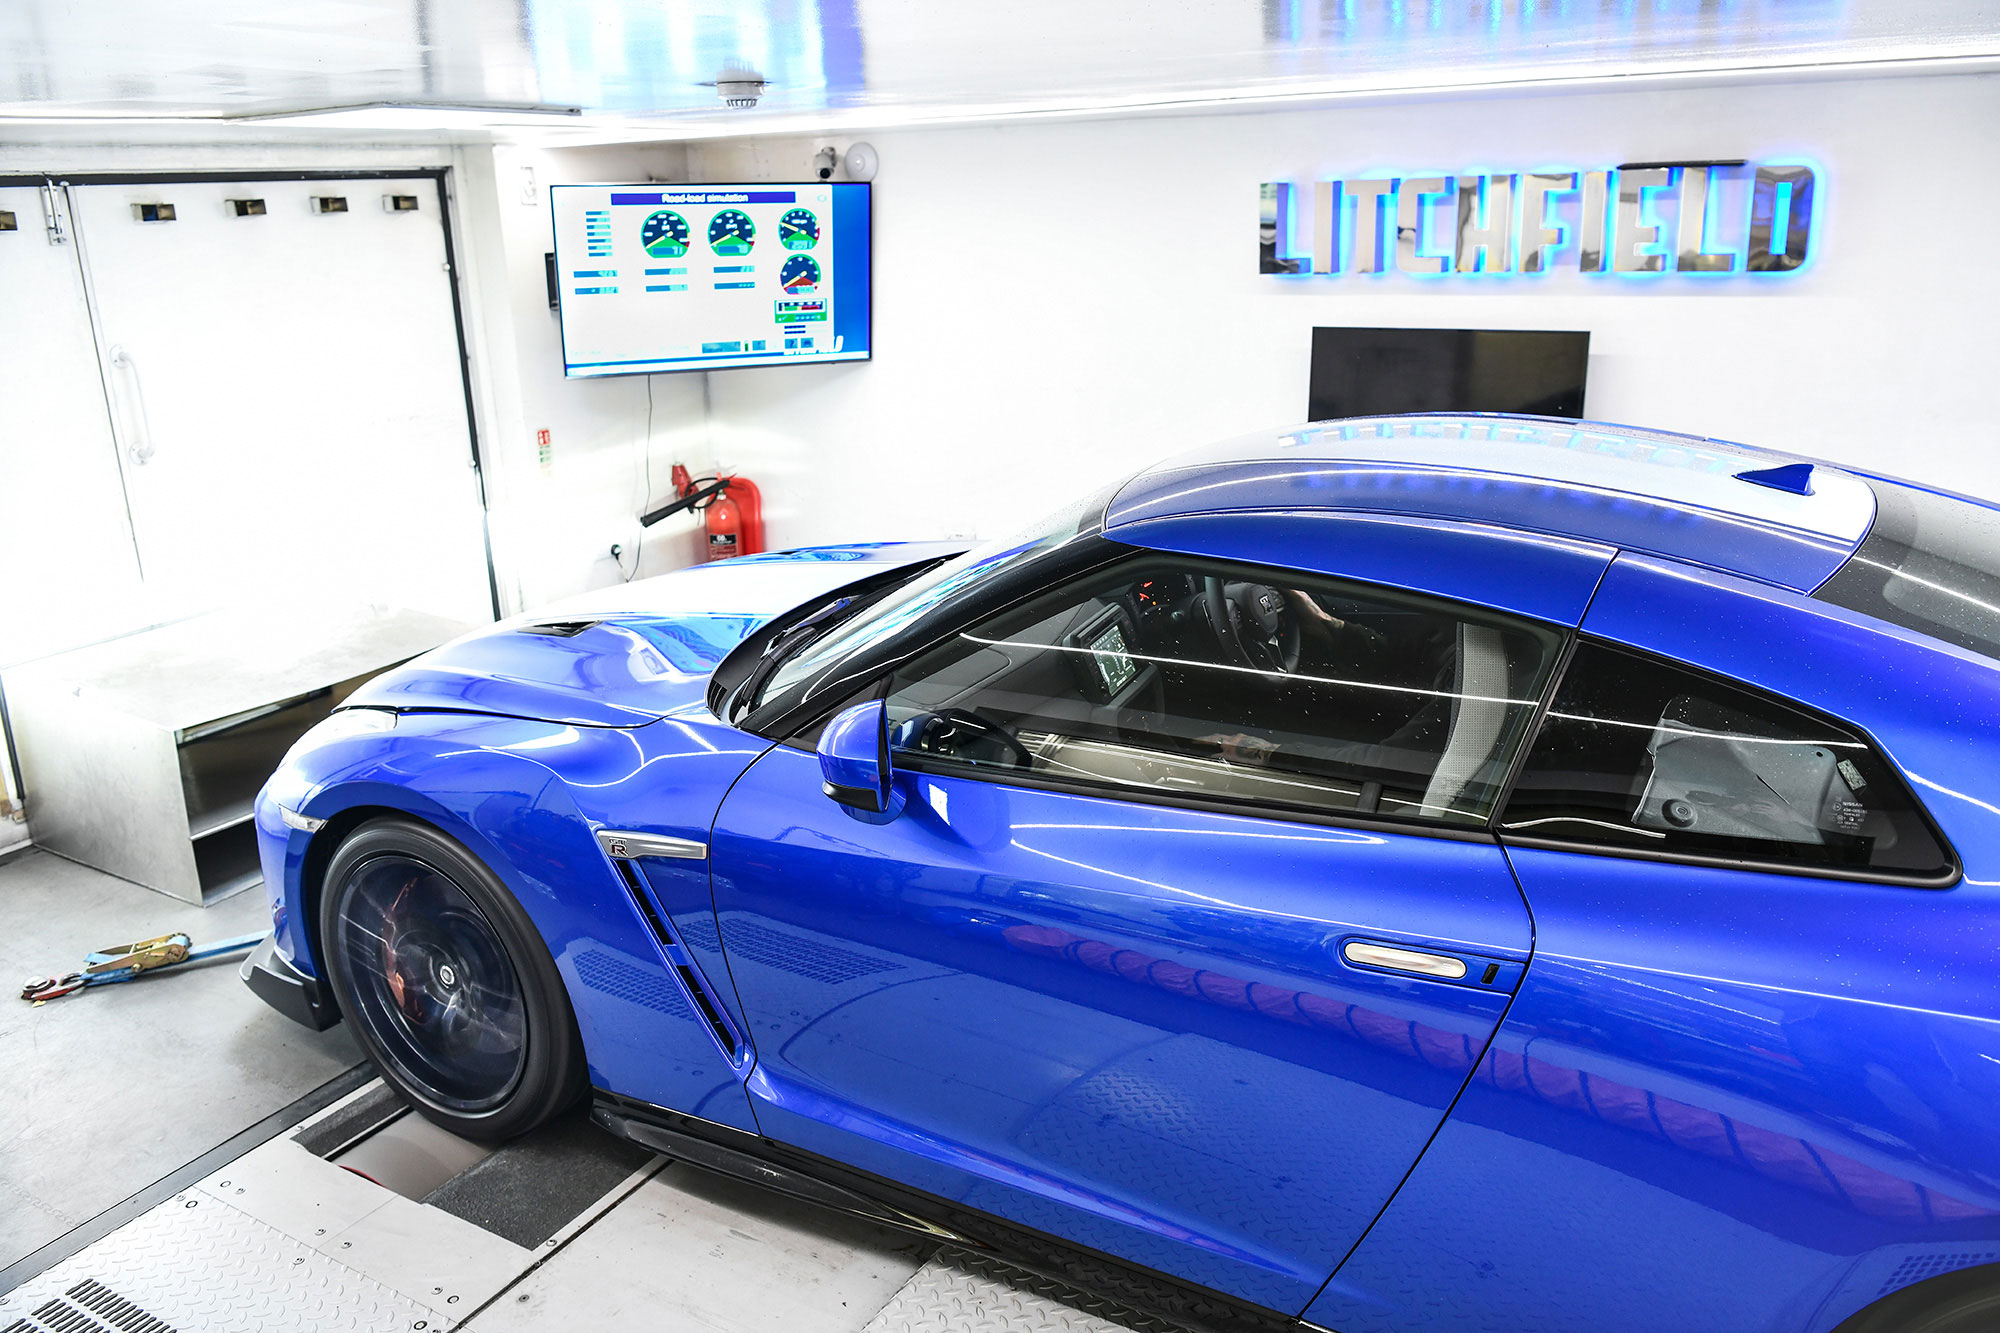 Ecutek Nissan GT-R software – Now with Live tuning!